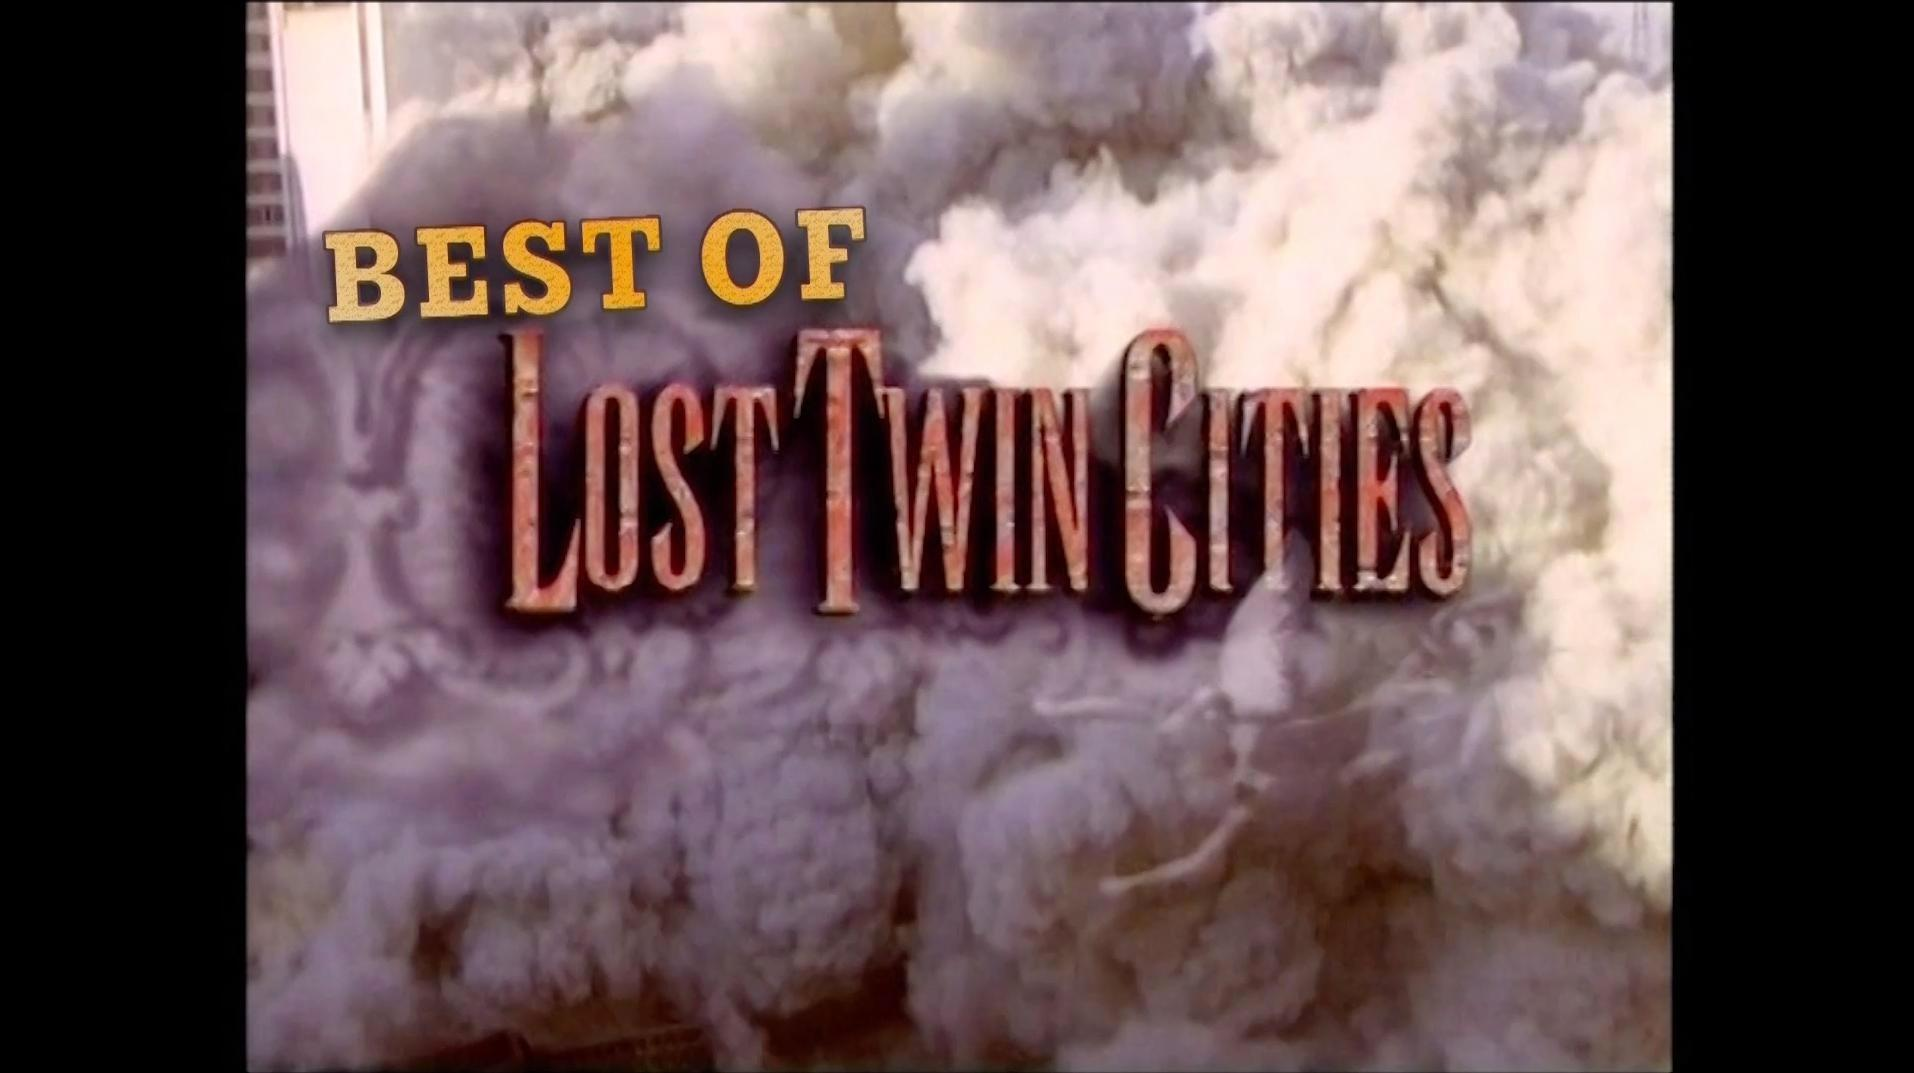 Best of Lost Twin Cities | Preview